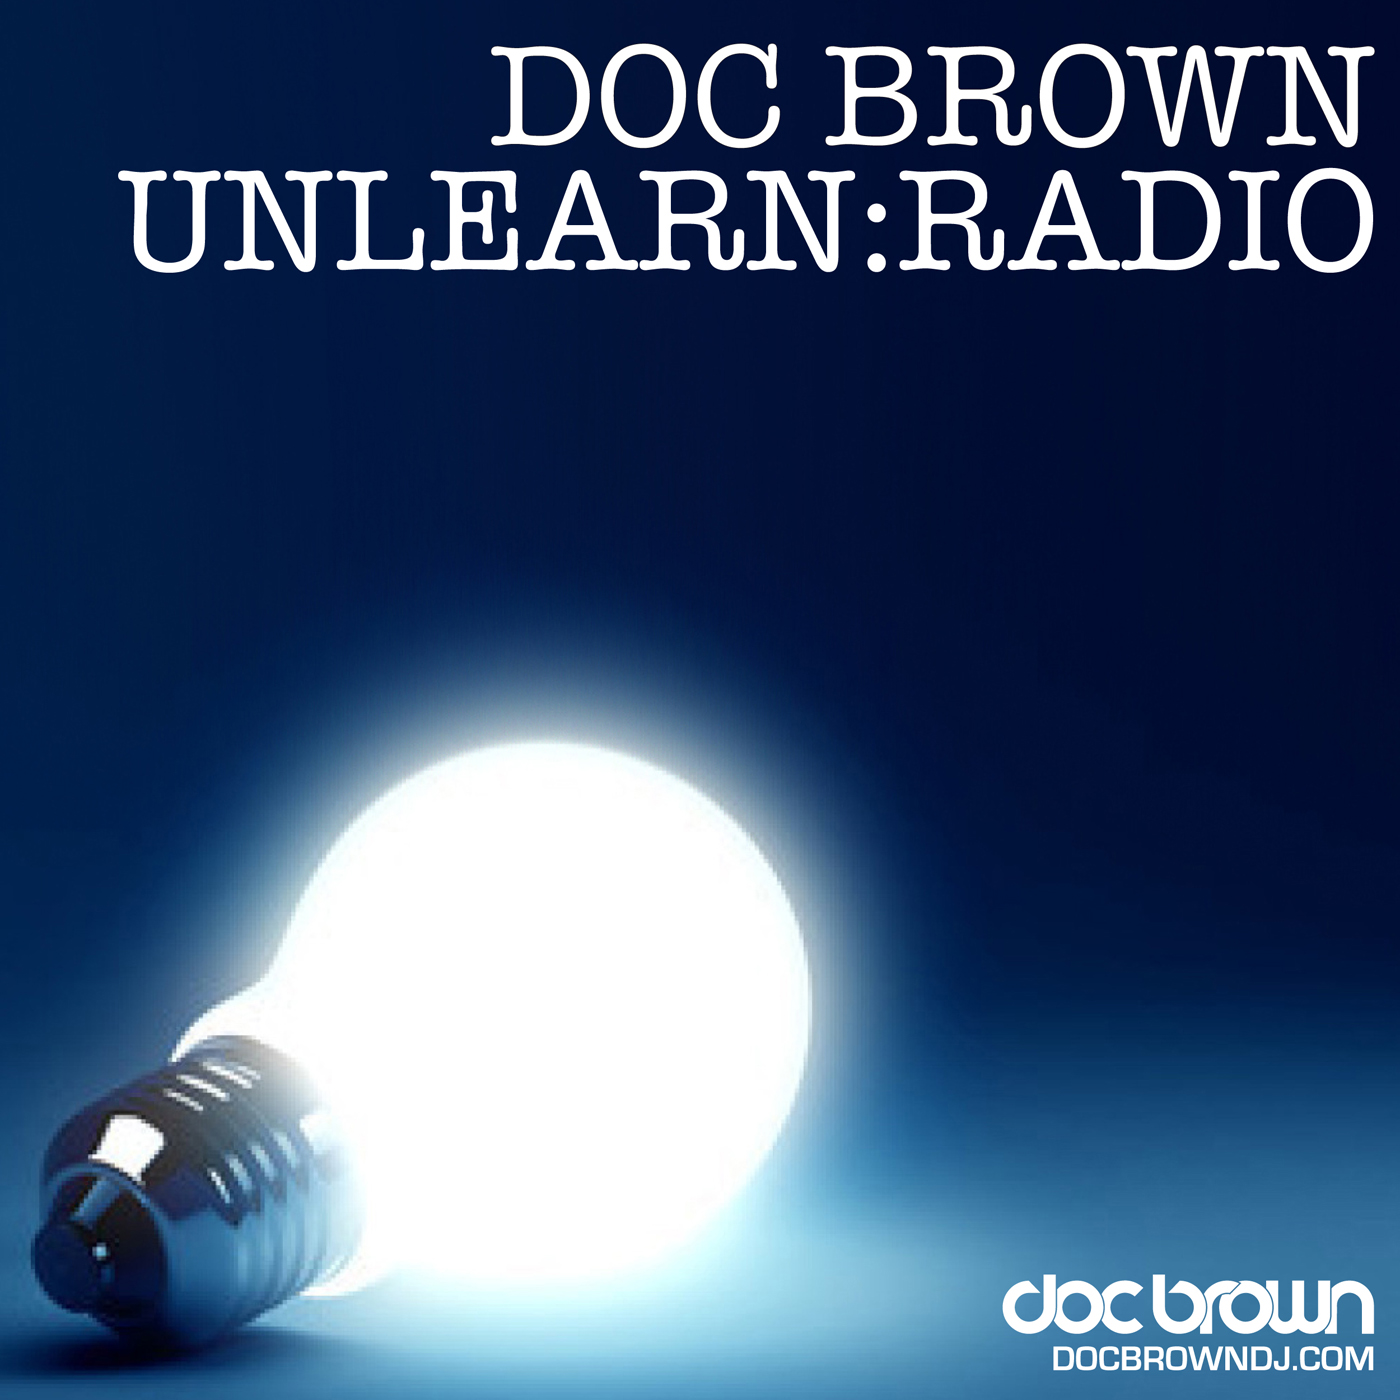 Doc Brown's Unlearn:Radio